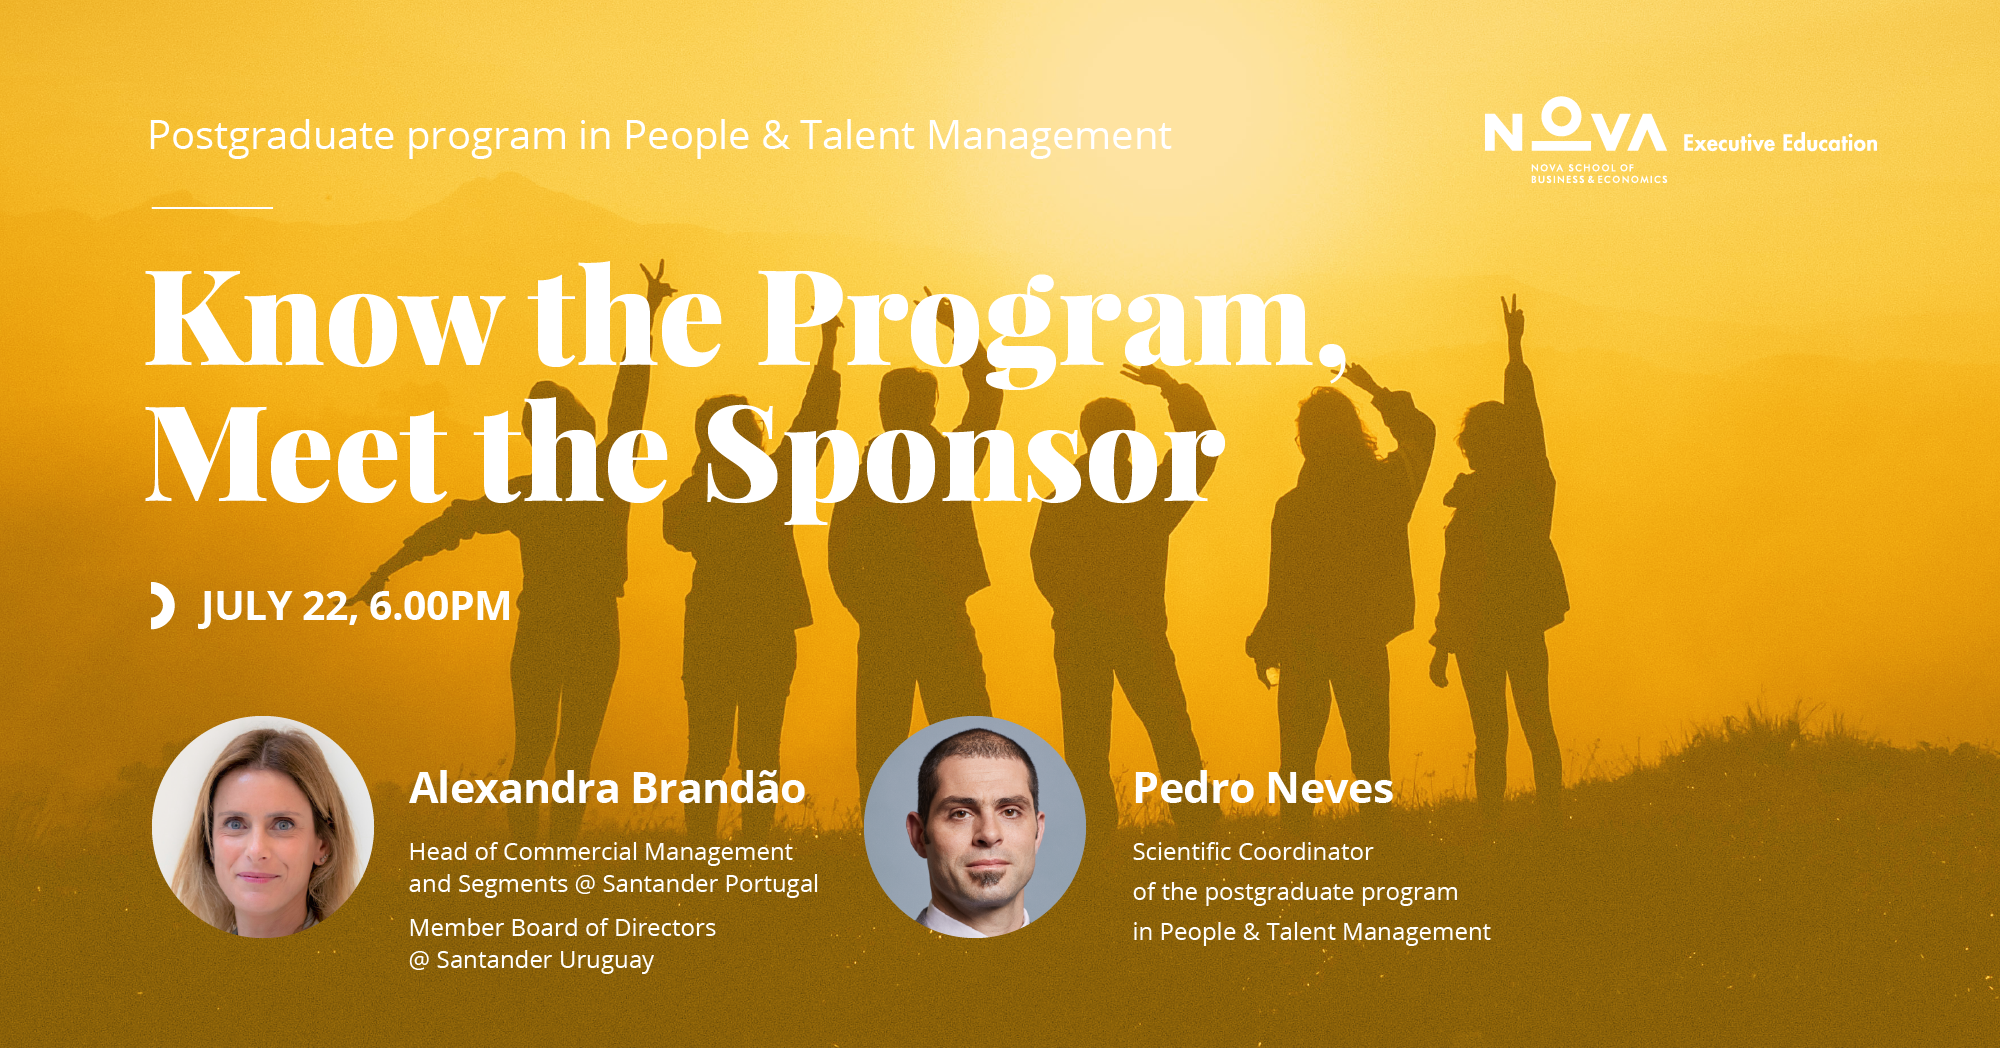 Know the Program, Meet the Sponsor: Alexandra Brandão